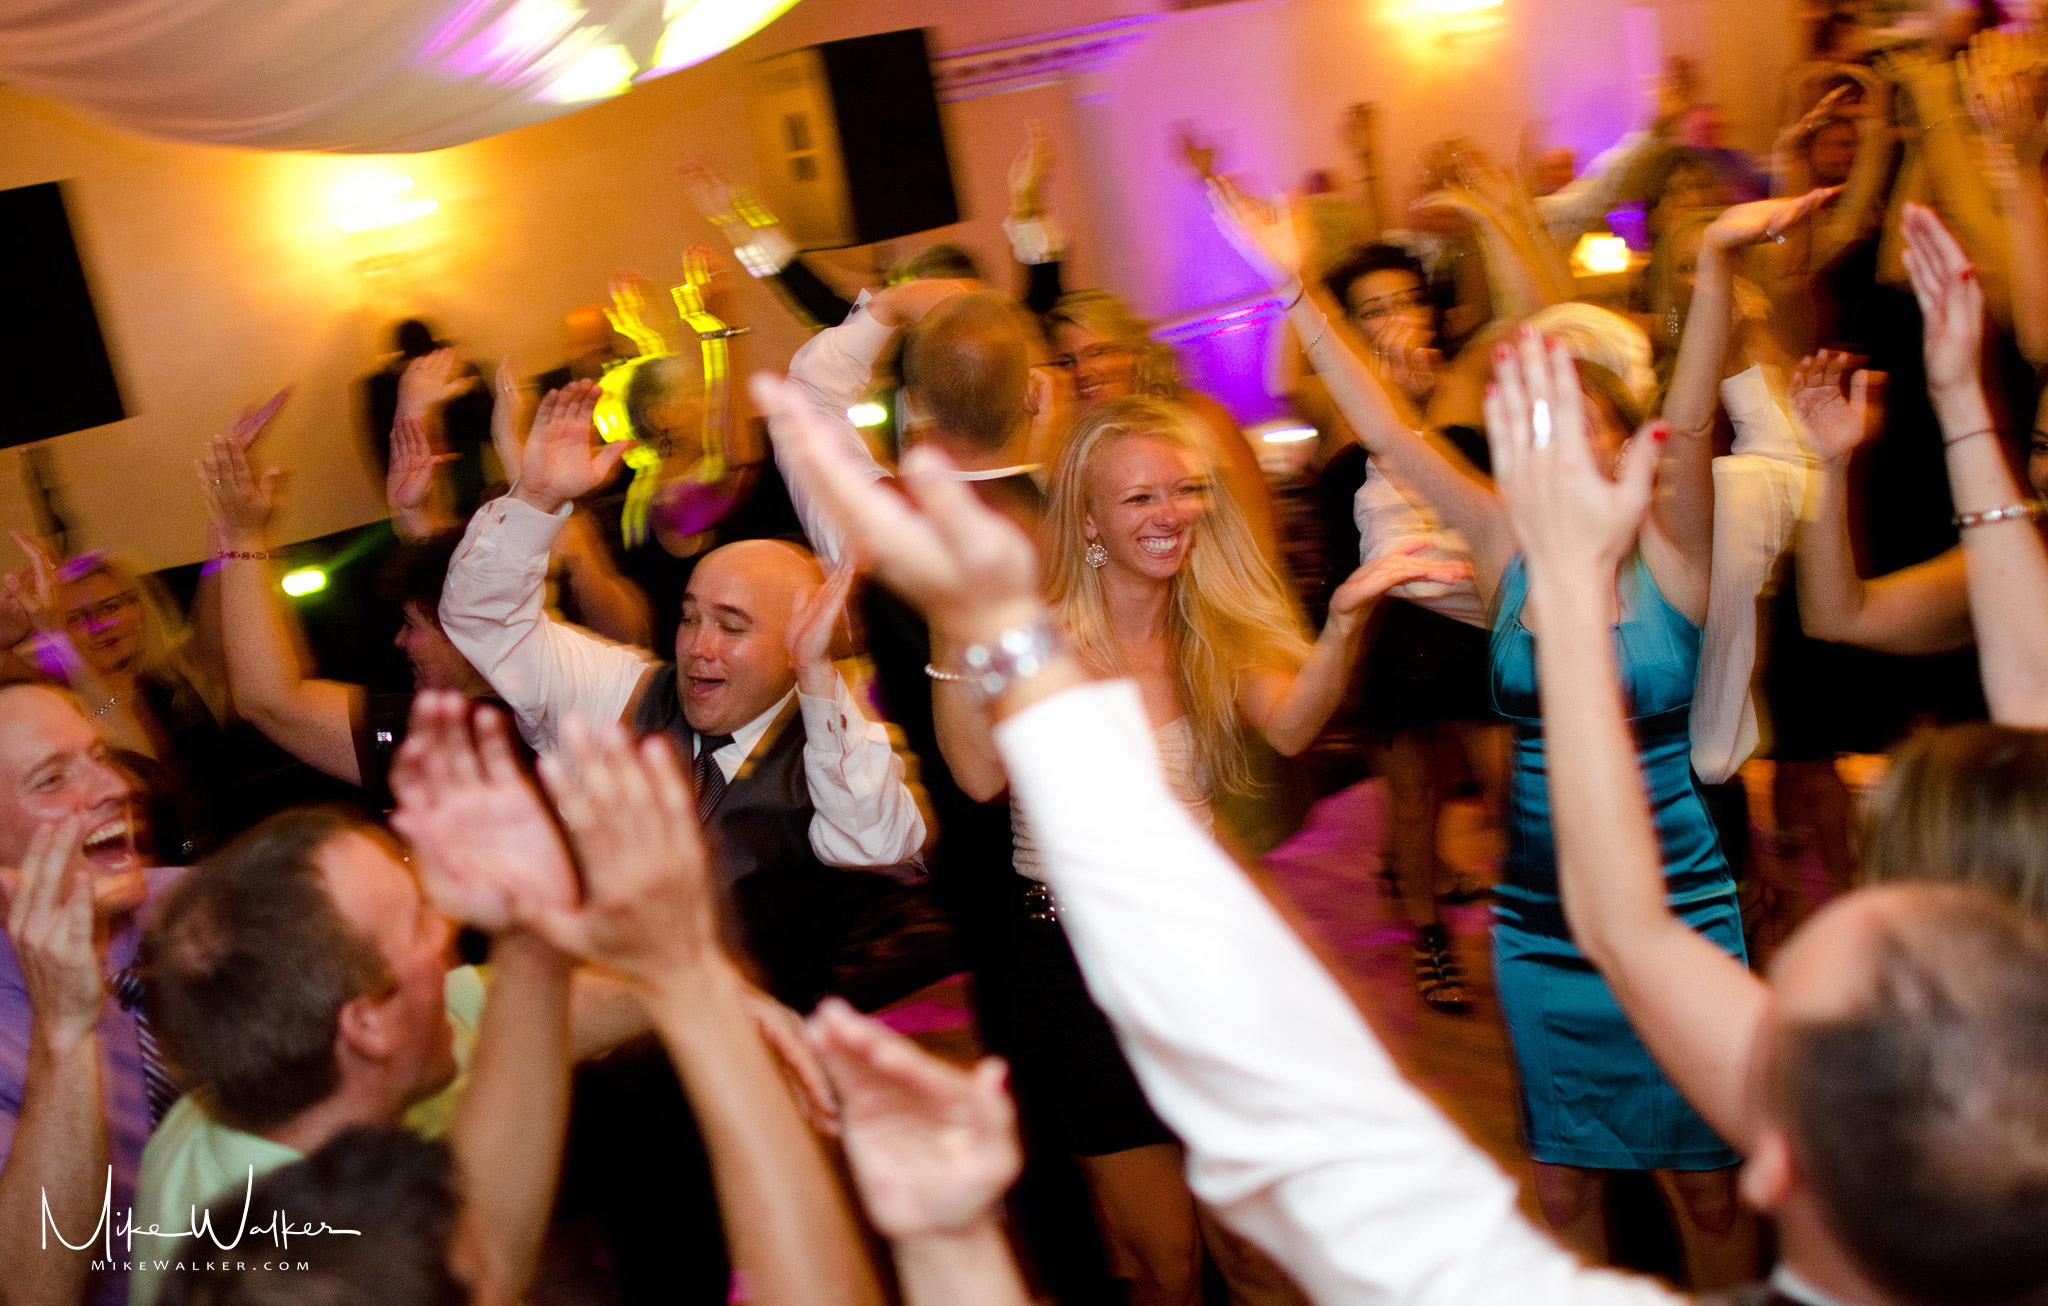 People on the dance floor at a wedding reception. Wedding photographer Mike Walker.